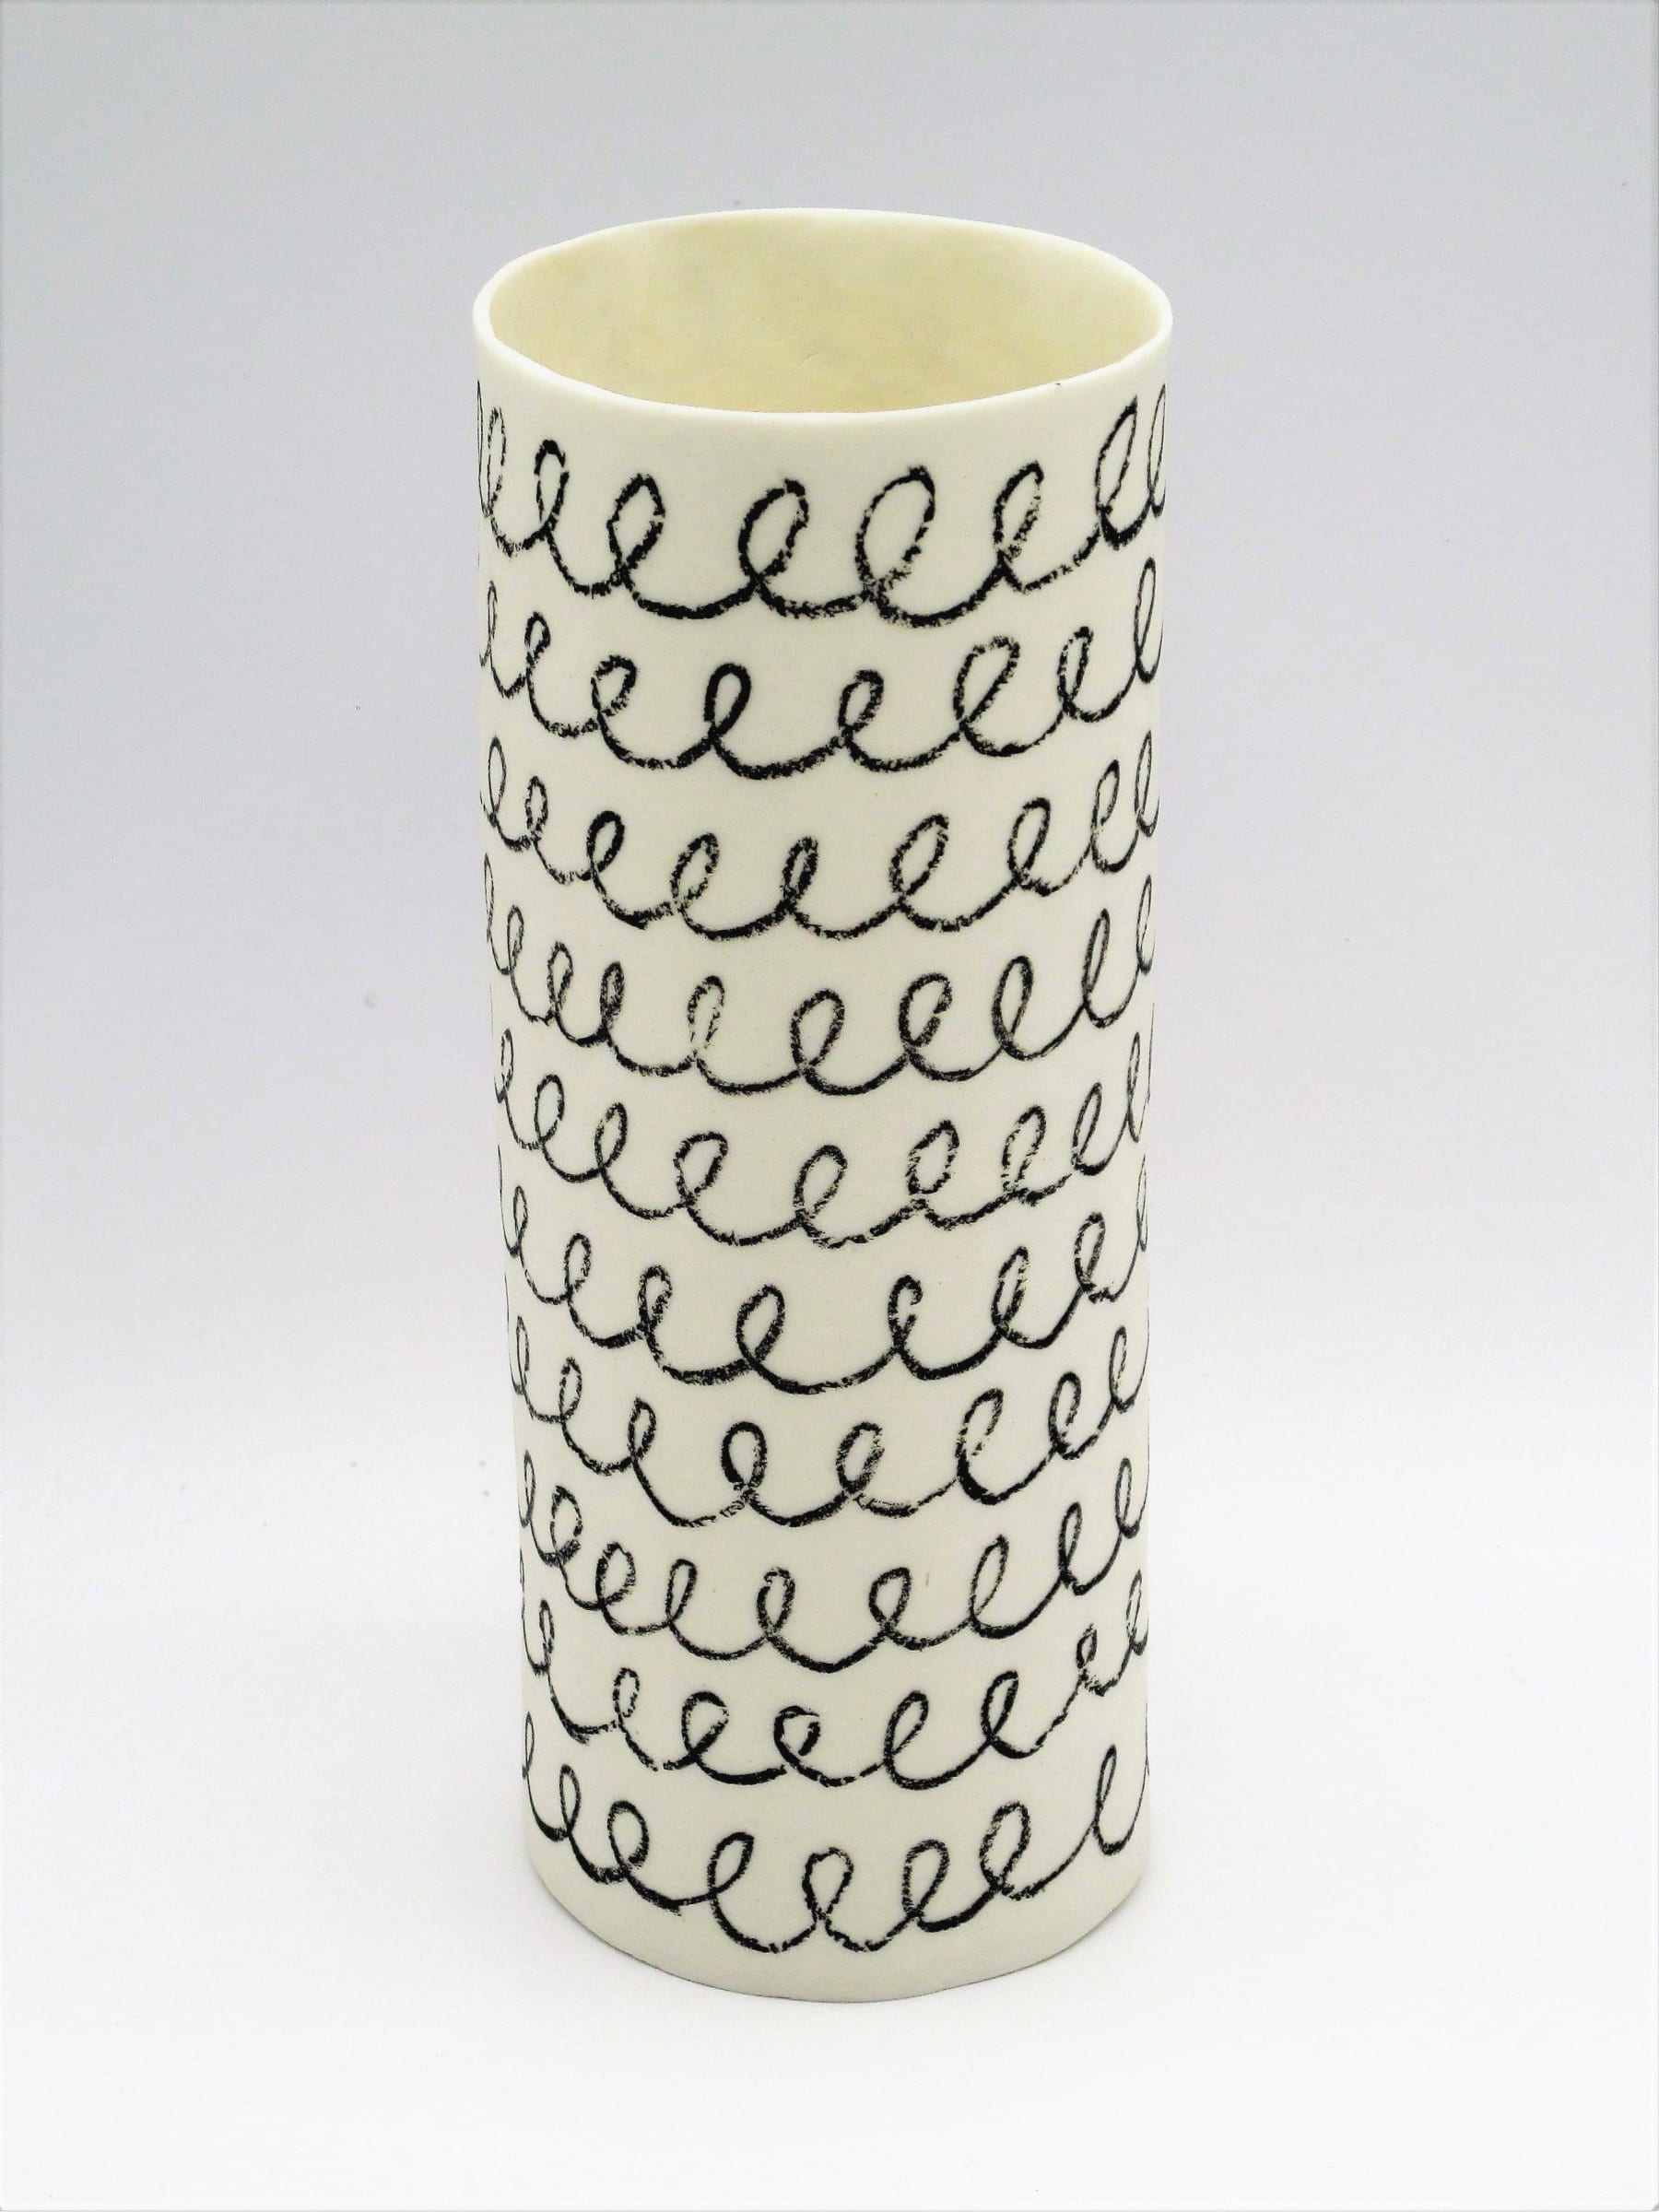 """<span class=""""link fancybox-details-link""""><a href=""""/artists/226-jane-muende/works/7159-jane-muende-white-cylinder-with-black-drawn-helter-skelter-in-2020/"""">View Detail Page</a></span><div class=""""artist""""><strong>Jane Muende</strong></div> <div class=""""title""""><em>White cylinder with black drawn helter skelter in wax crayon</em>, 2020</div> <div class=""""medium"""">Hand built in paper porcelain</div> <div class=""""dimensions"""">15 cm x 5.5 cm </div><div class=""""price"""">£140.00</div><div class=""""copyright_line"""">Own Art: £14 x 10 months 0% APR</div>"""